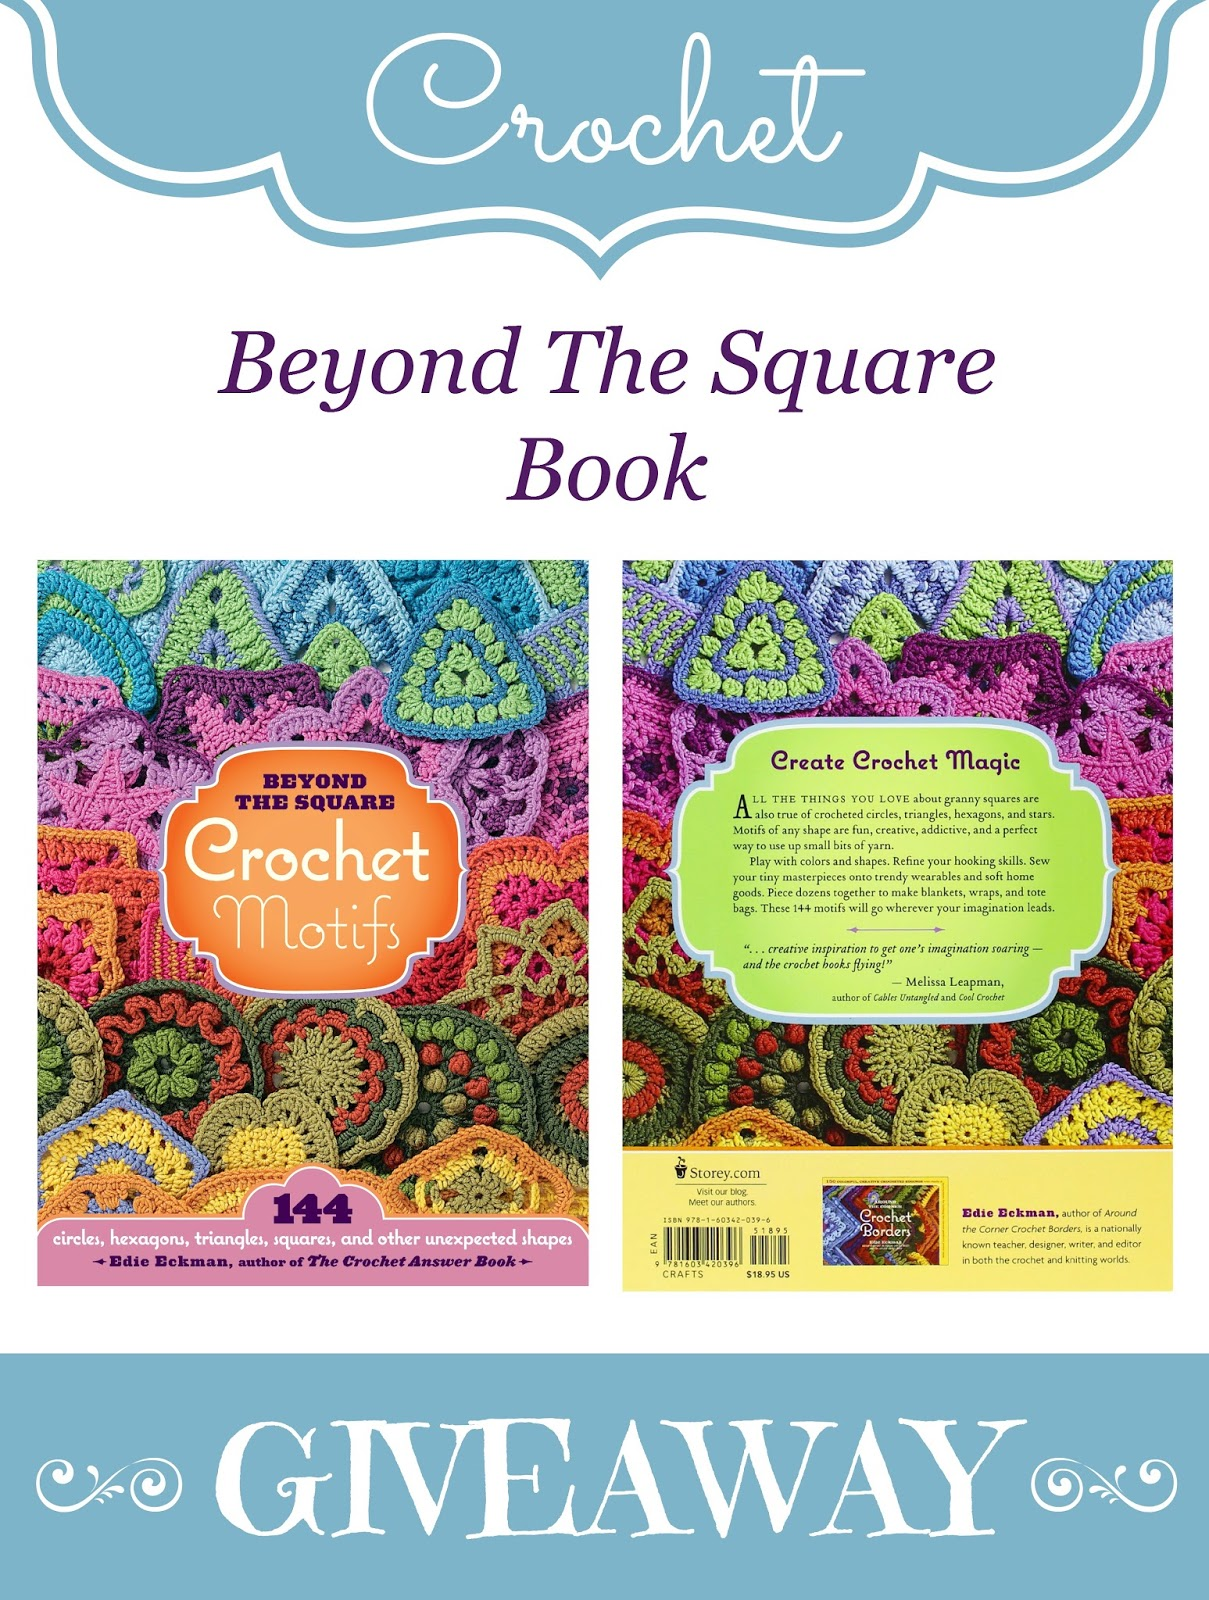 http://3.bp.blogspot.com/-RQGGyg5_t14/U1cM_cO9IjI/AAAAAAAAIyw/TxRpSqqW9wU/s1600/Beyond+The+Square+Crochet+Motifs+Book+Giveaway.jpg